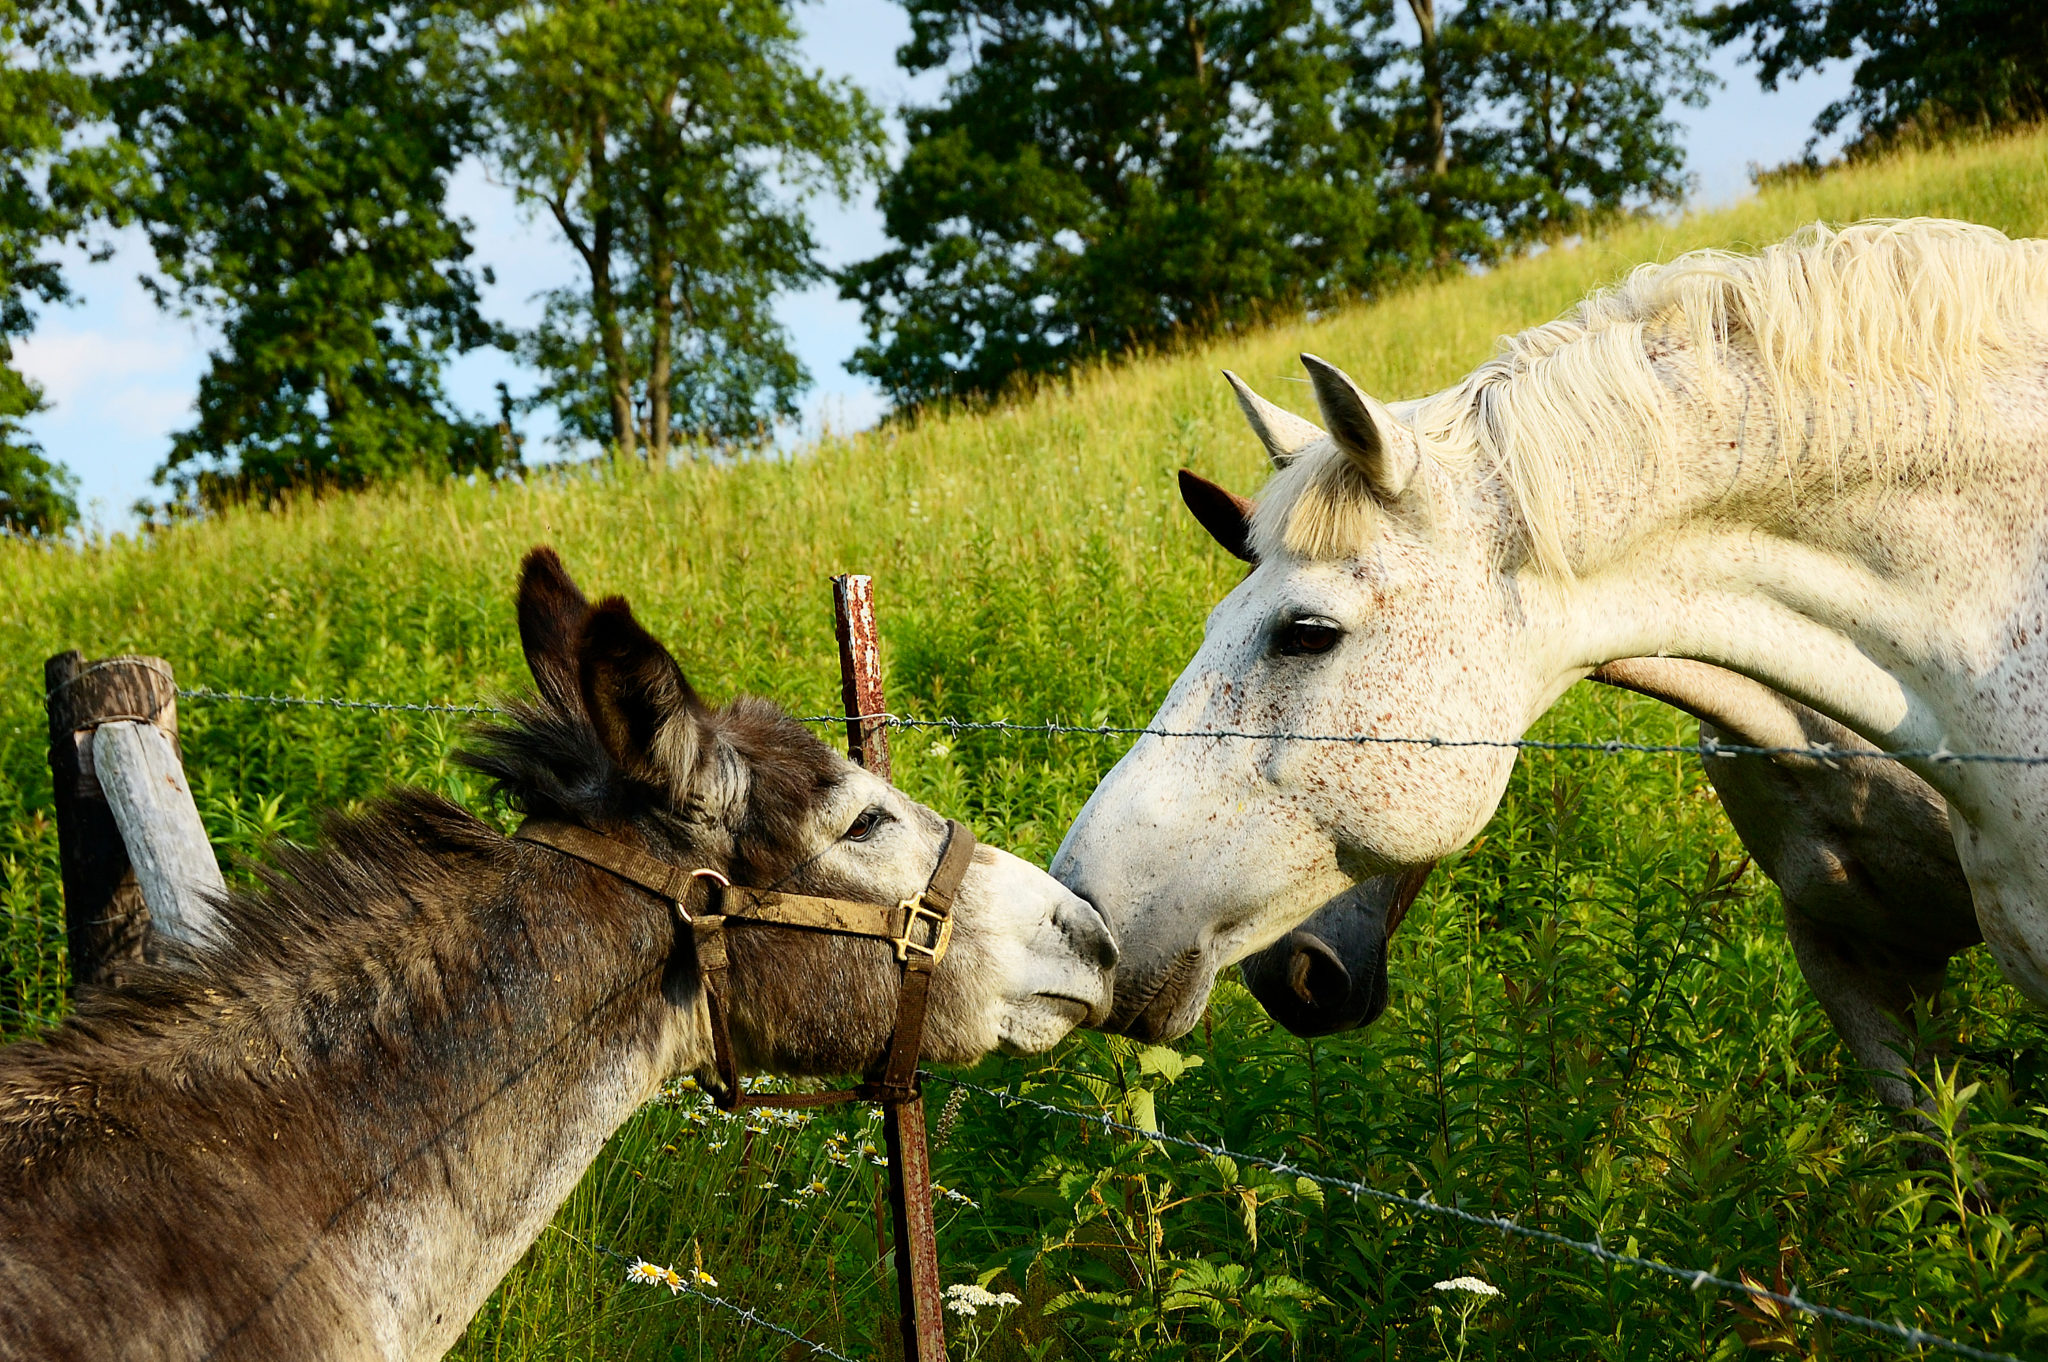 Meeting,The,Neighbors,,Donkey,And,Horses,,Summer,Evening,On,The